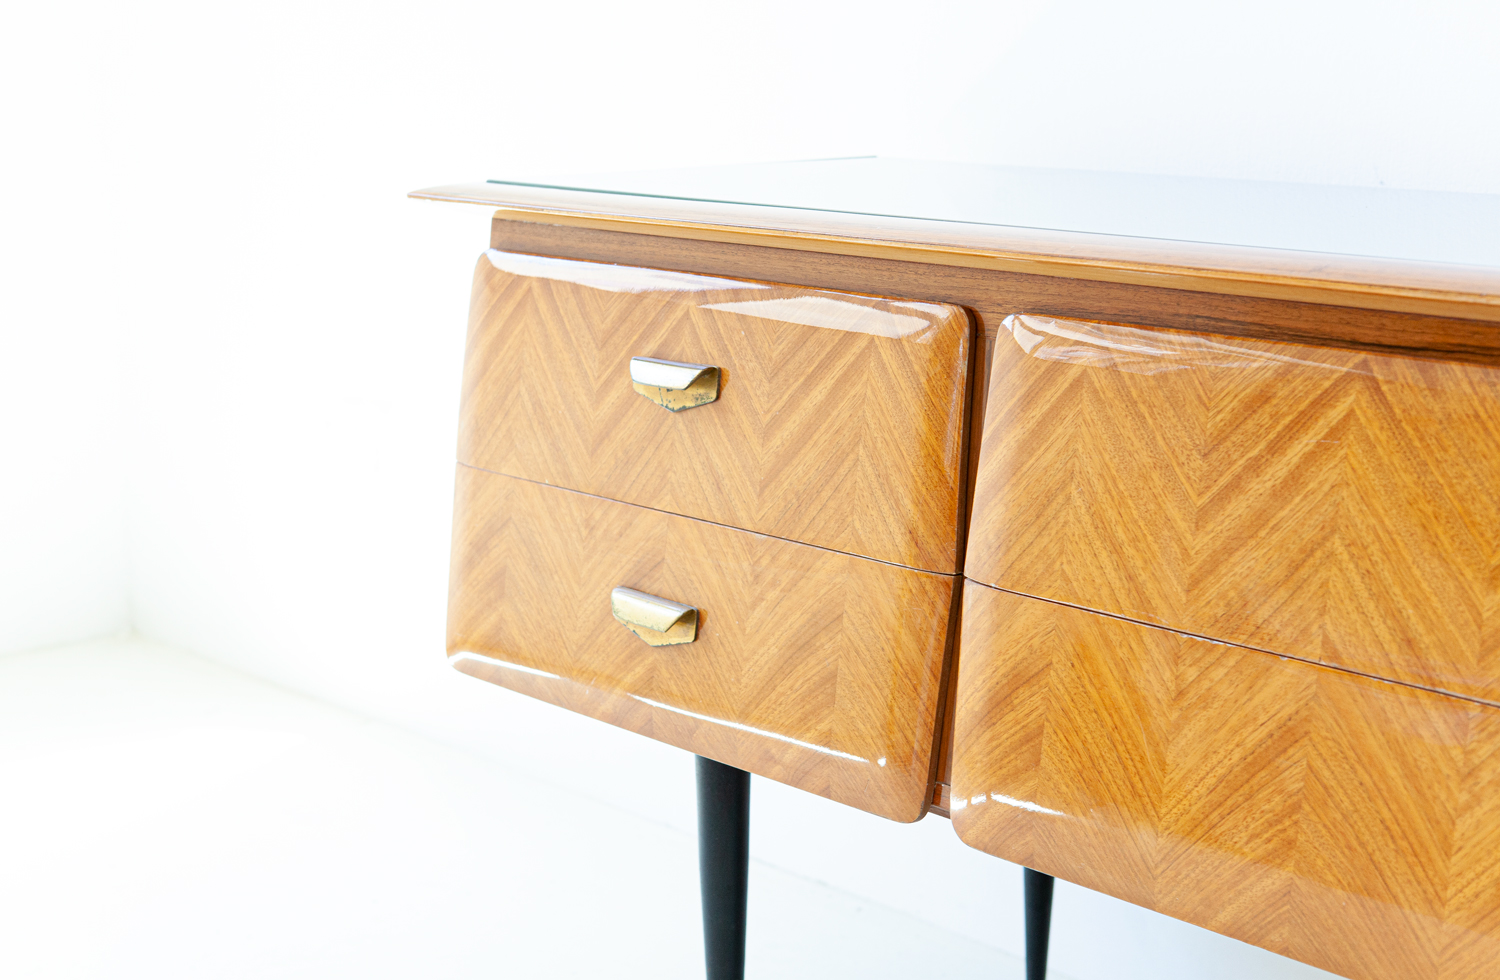 1950s-itaian-blond-mahogany-chest-of-drawers-3-st124